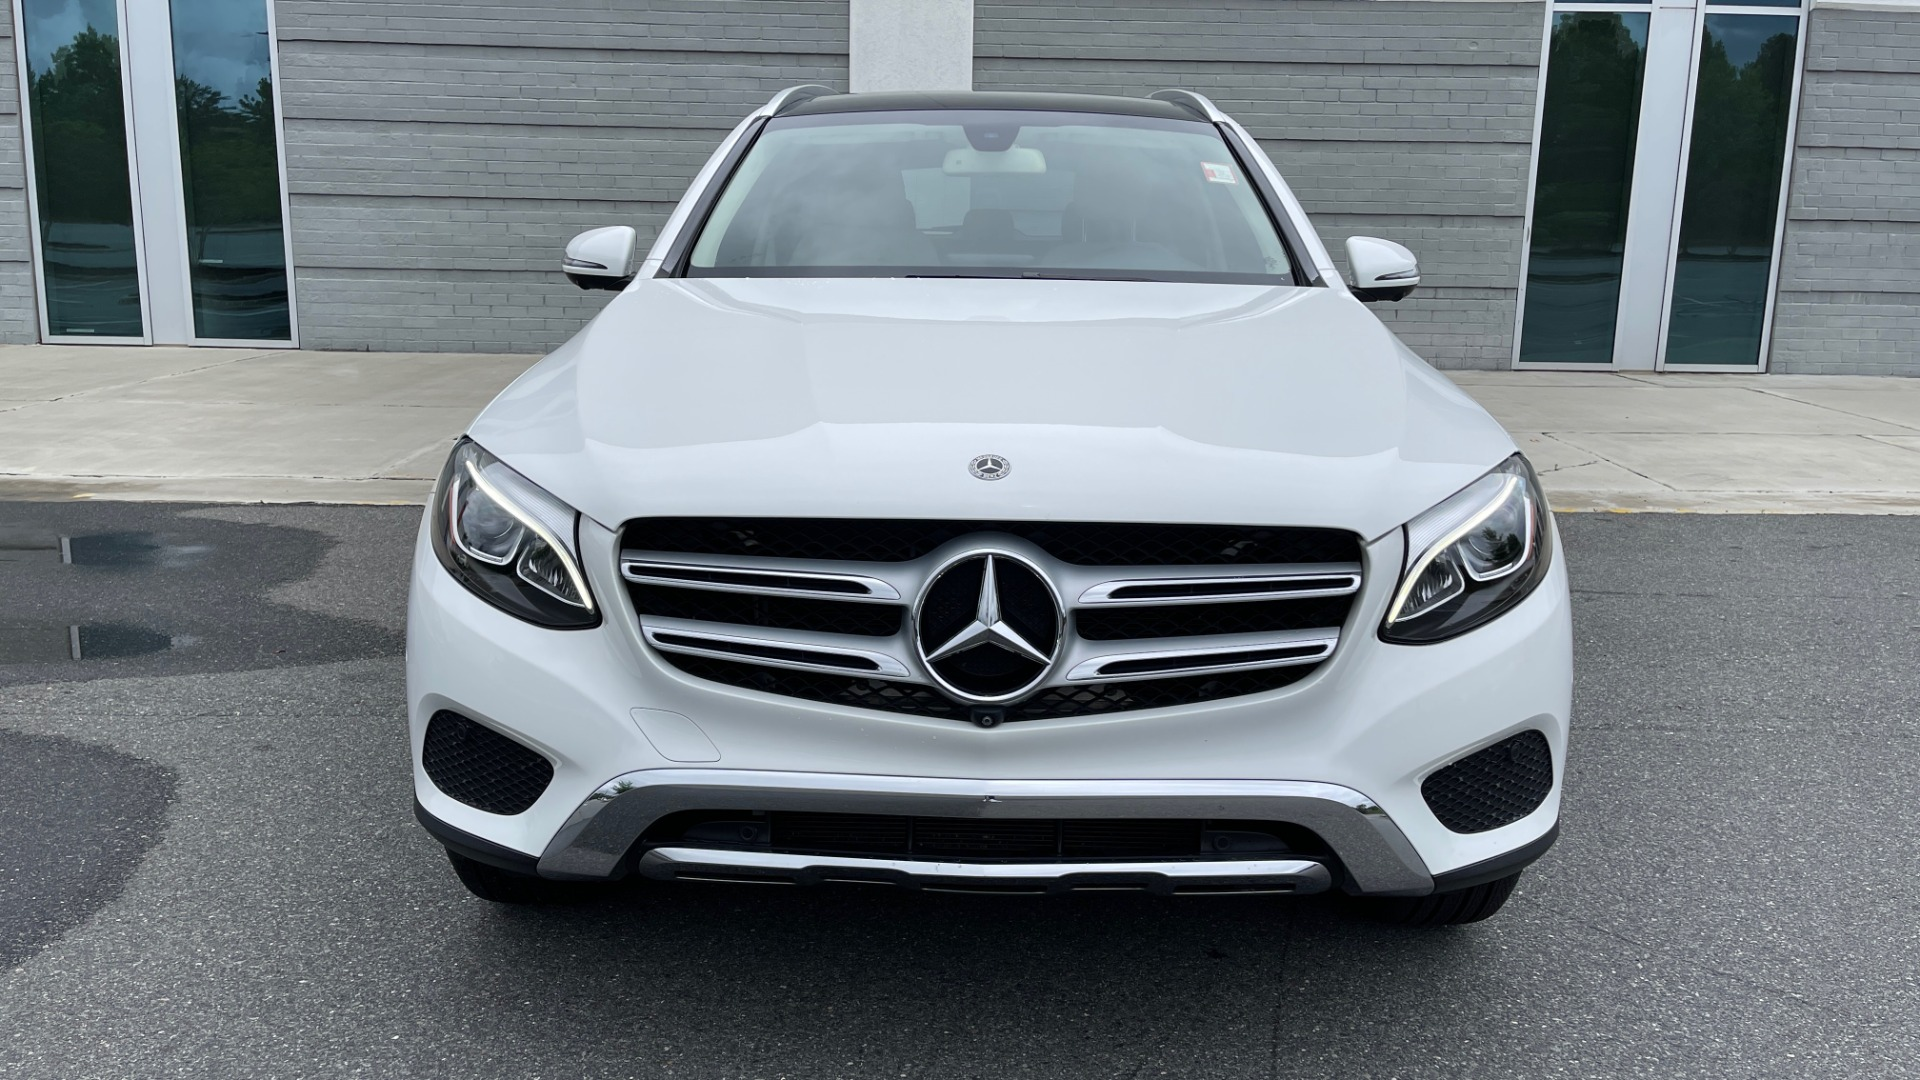 Used 2018 Mercedes-Benz GLC 300 PREMIUM / PANO-ROOF / HTD STS / PARK ASST / REARVIEW for sale $34,613 at Formula Imports in Charlotte NC 28227 10